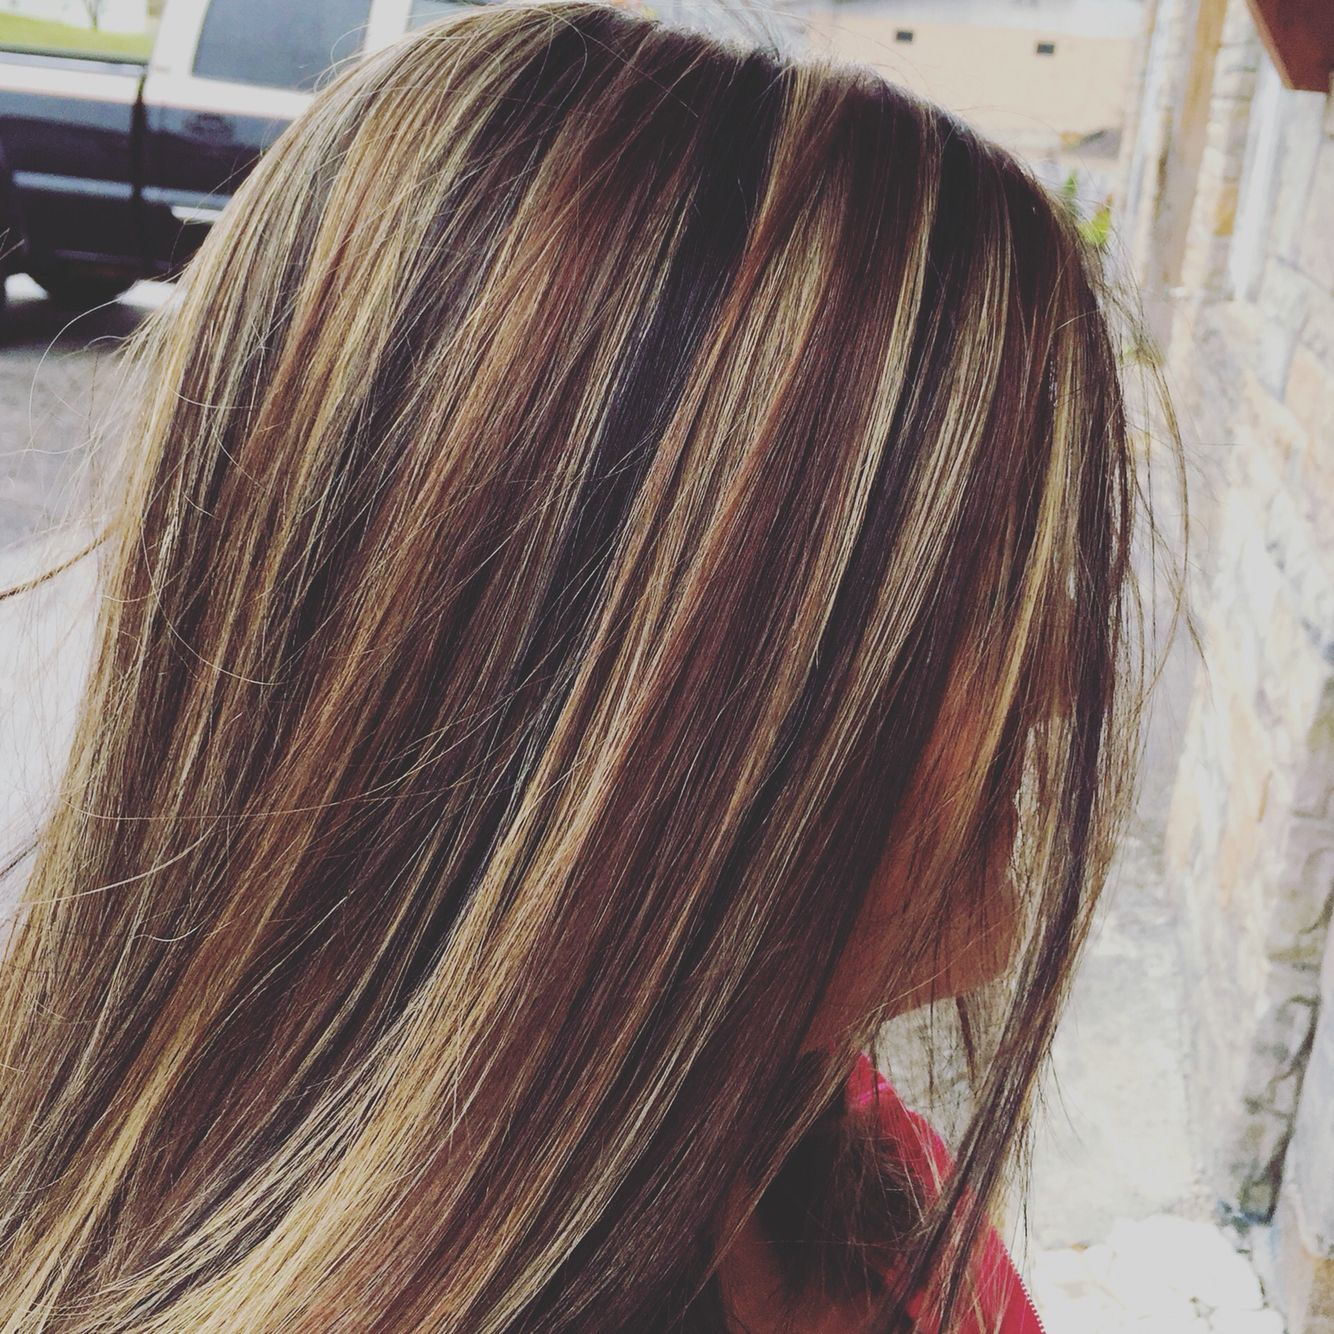 Caramel Highlights Black Lowlights Tobacco Brown Lowlights Perfect Fall Col Fall Hair Color For Brunettes Brown Hair With Highlights Black Hair With Highlights